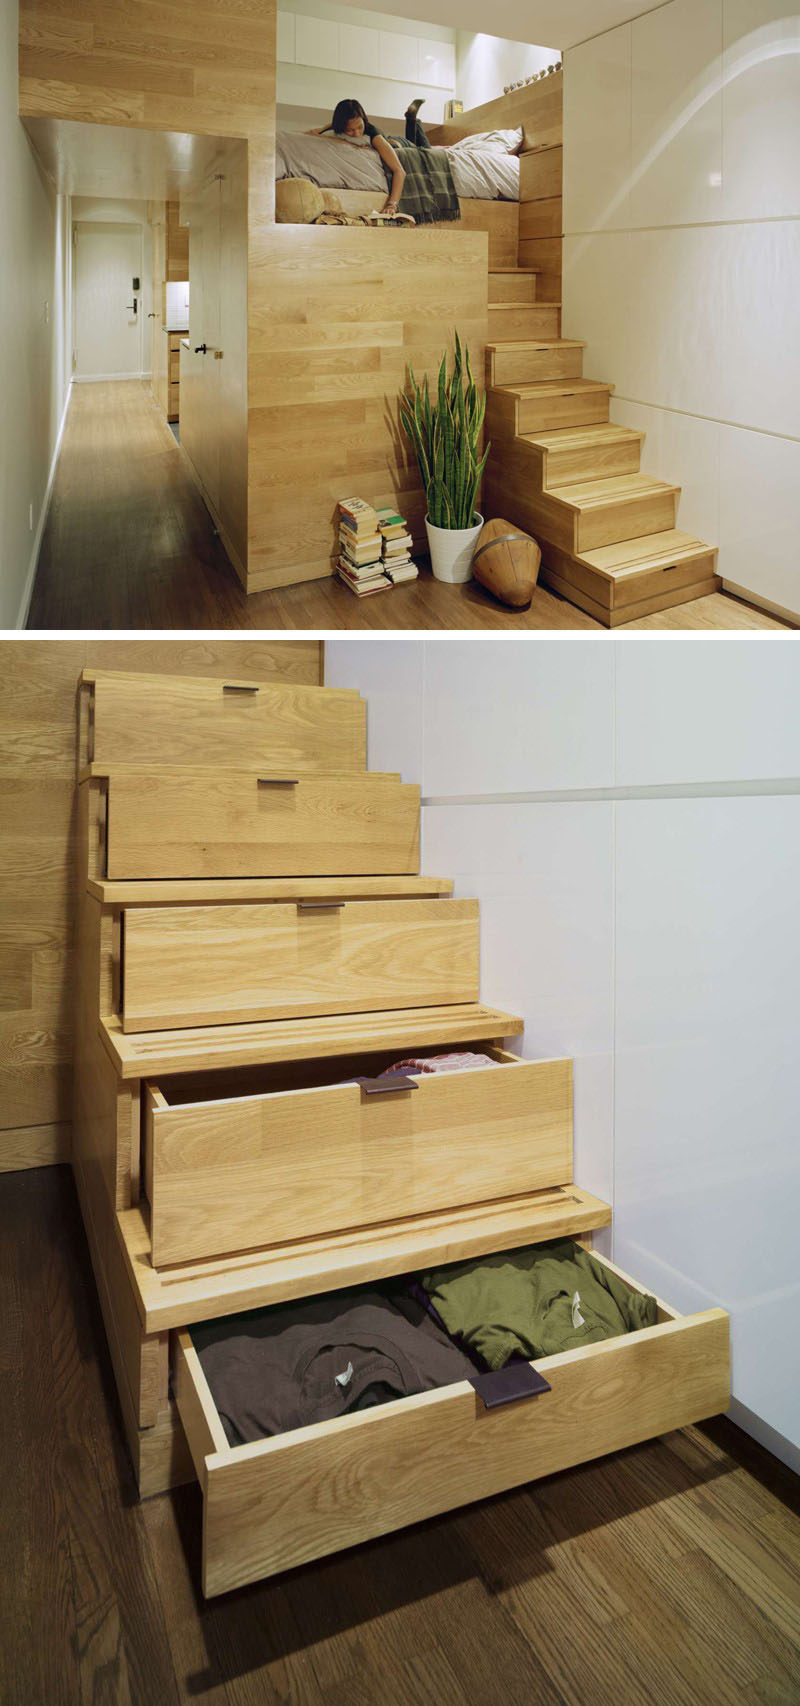 13 stair design ideas for small spaces contemporist for Small spaces ideas for small homes